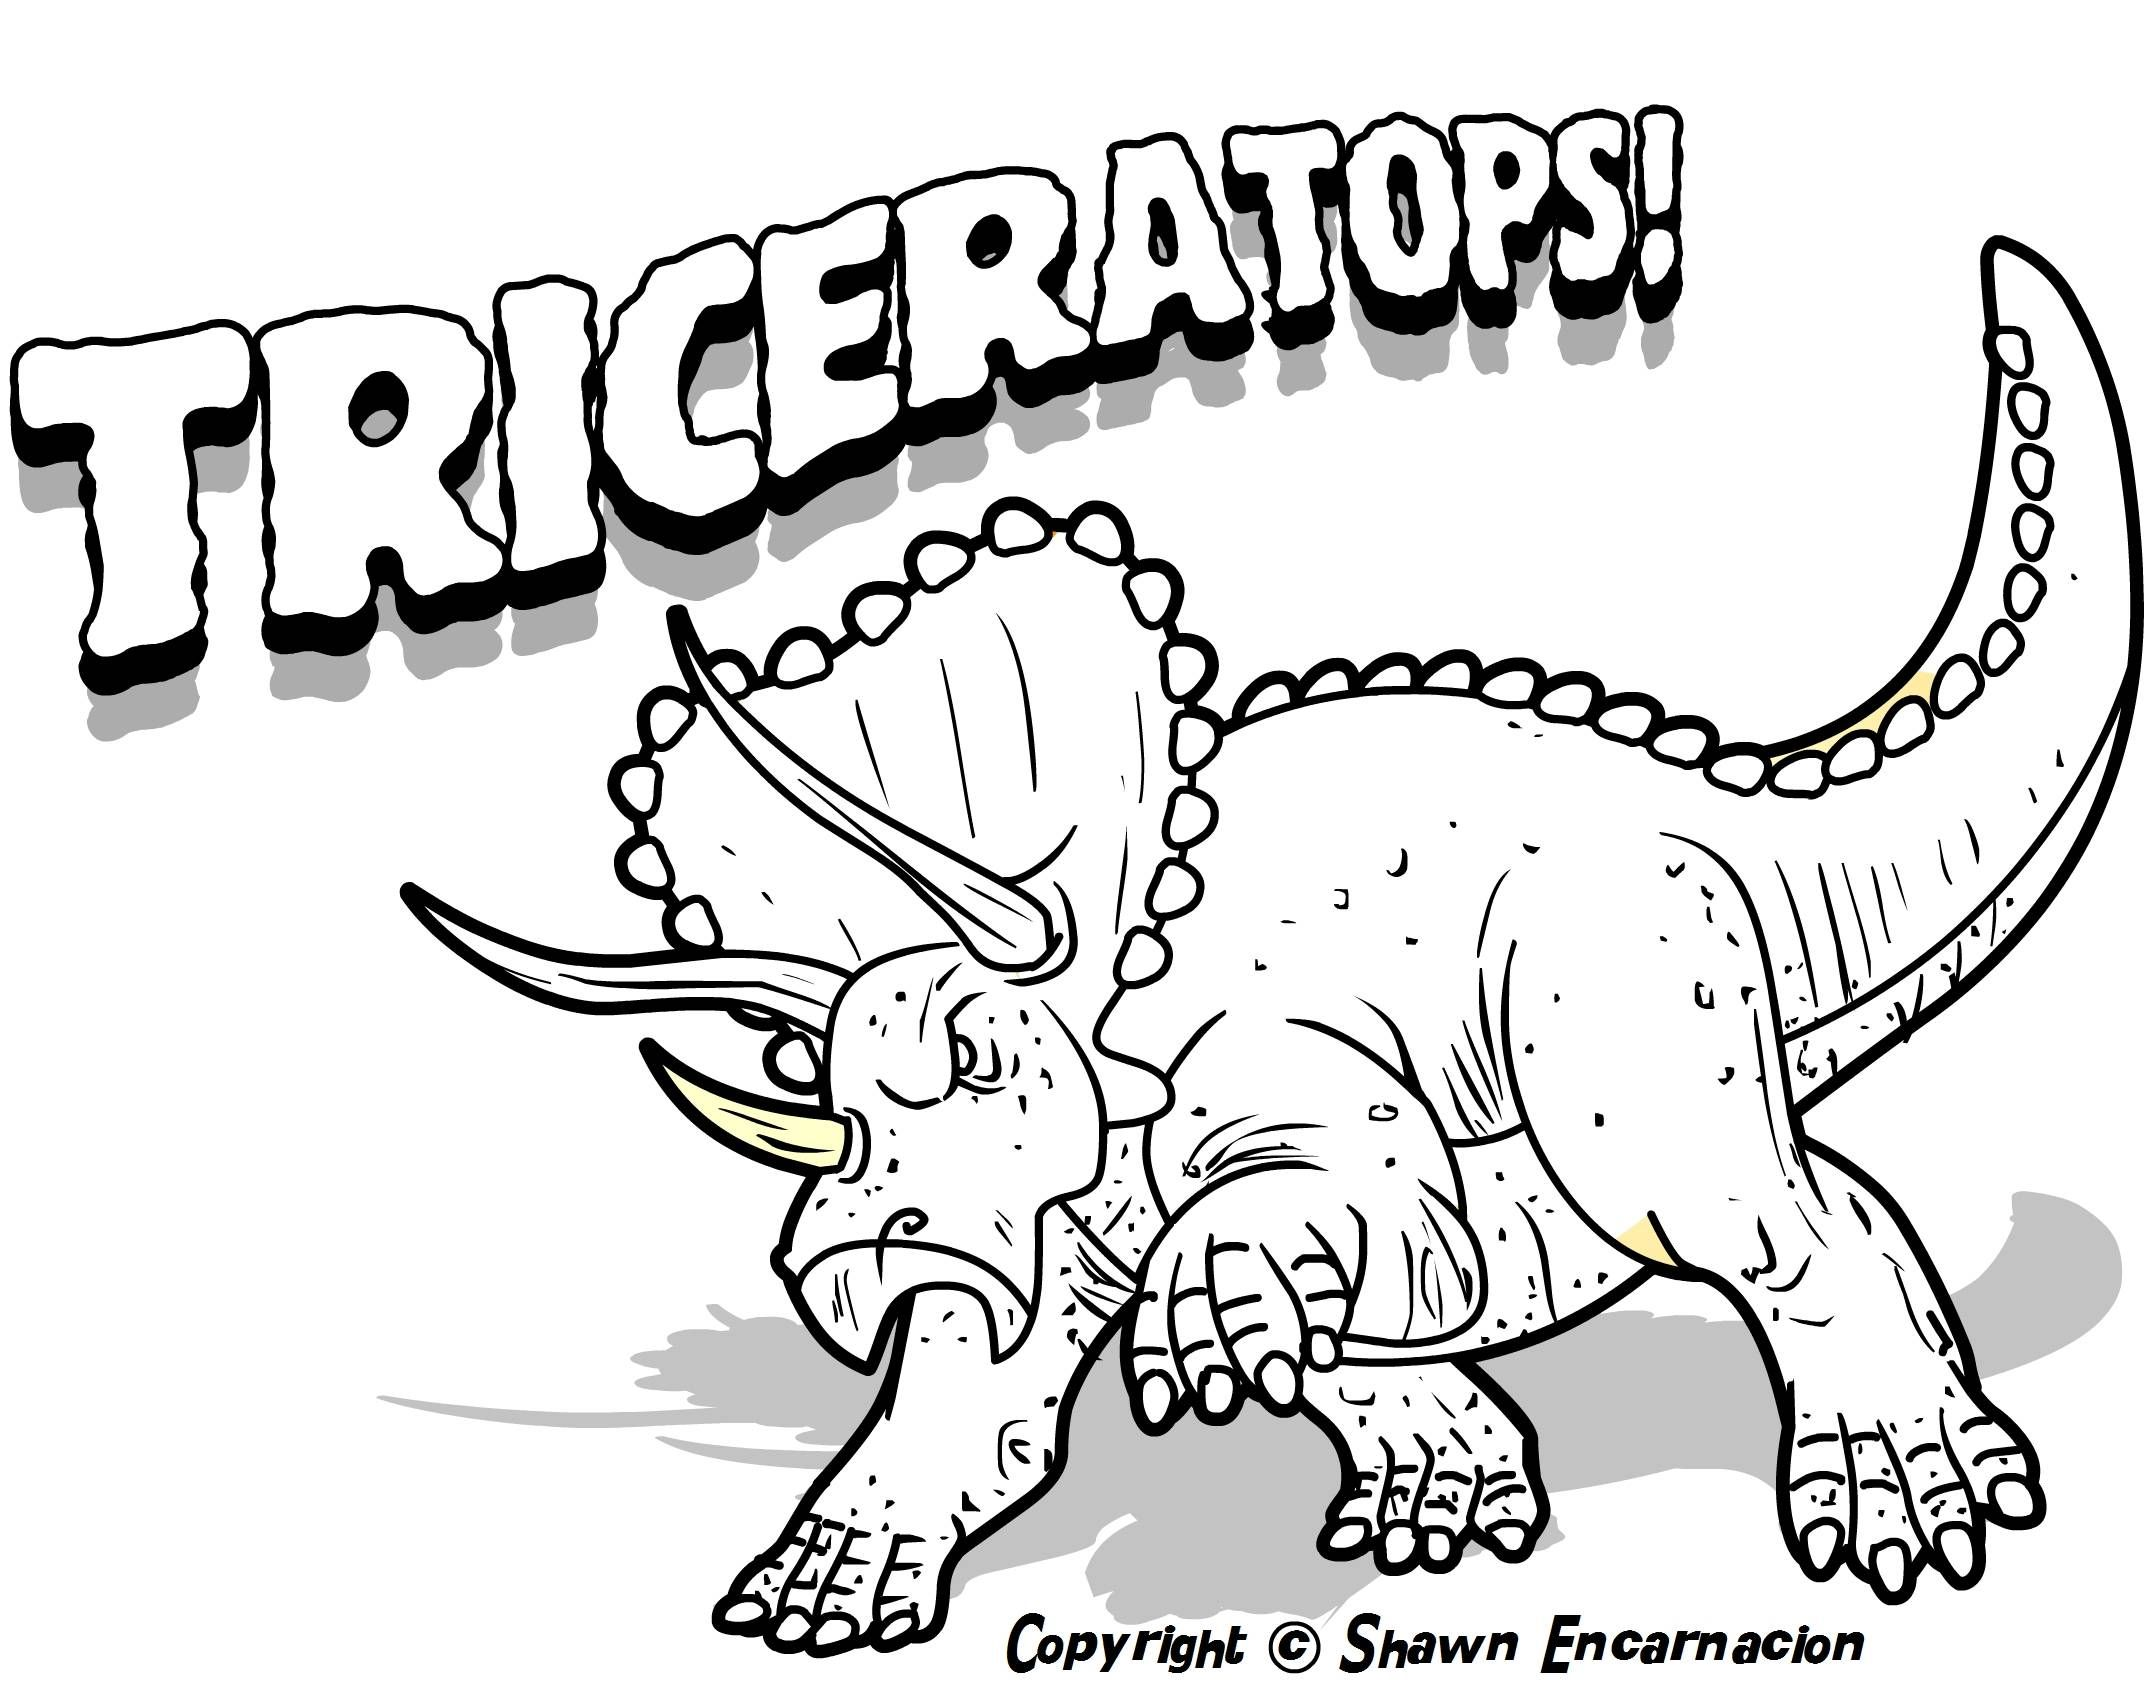 Printable coloring pages dinosaurs - Free Dinosaur Coloring Pages Free Coloring Pages Coloring Pages Dinosaur Coloring Sheet 2017 Coloring Ideas Gallery Free Printable Coloring Page For